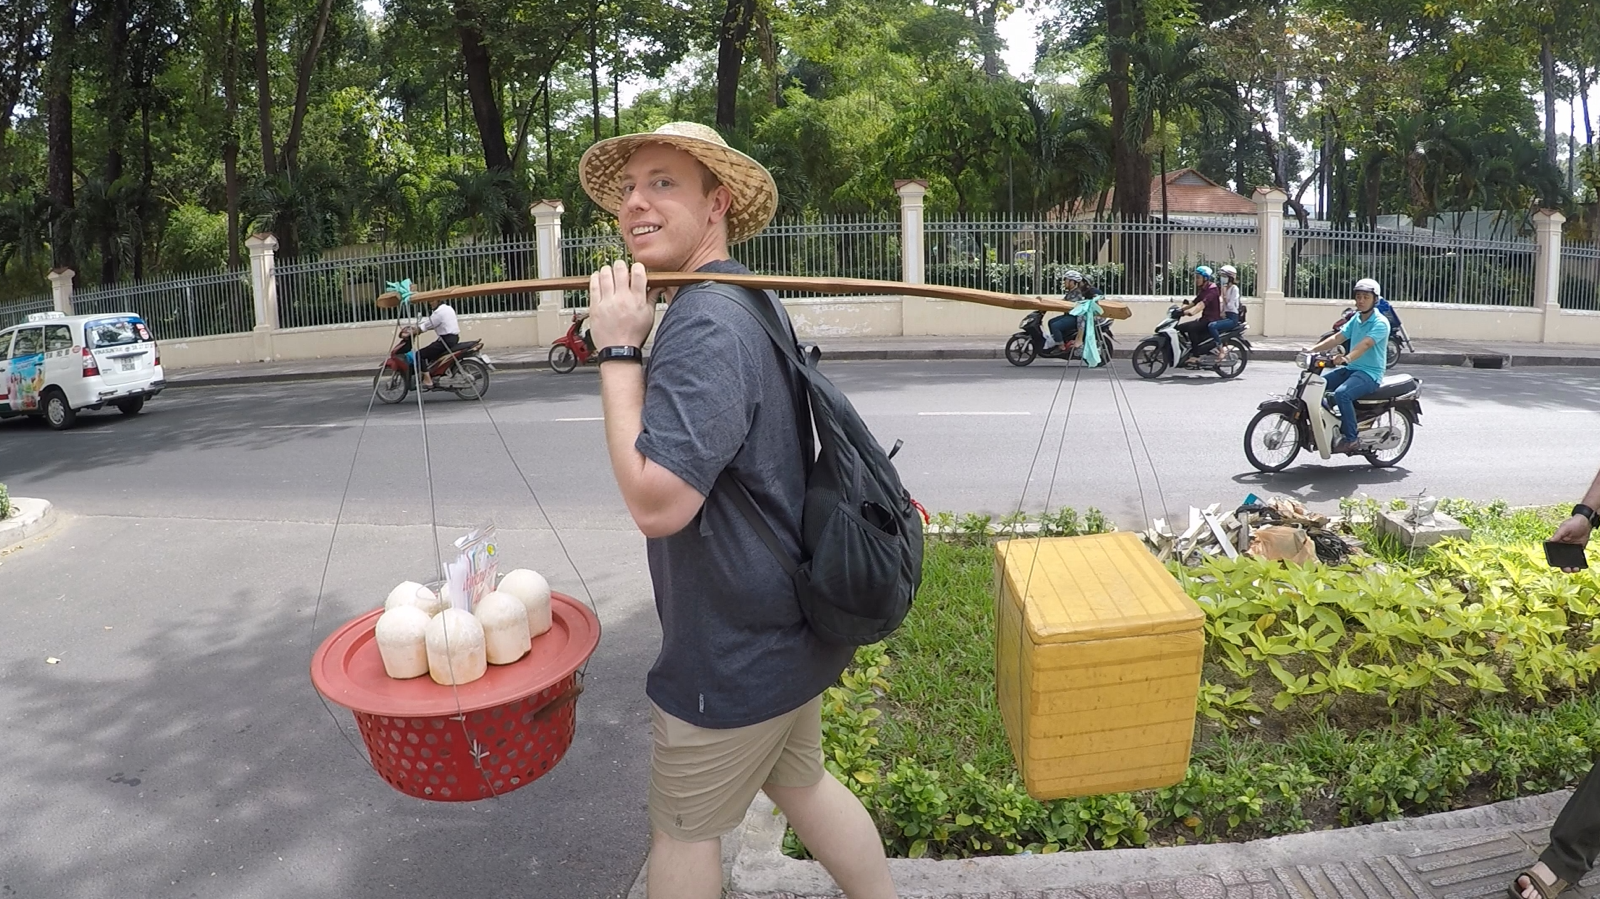 Yep, I Stick our Like a Sore Thumb. The Bustling Streets of Ho Chi Minh and History Filled in This City Made for the Most Unforgettable Trip to Vietnam